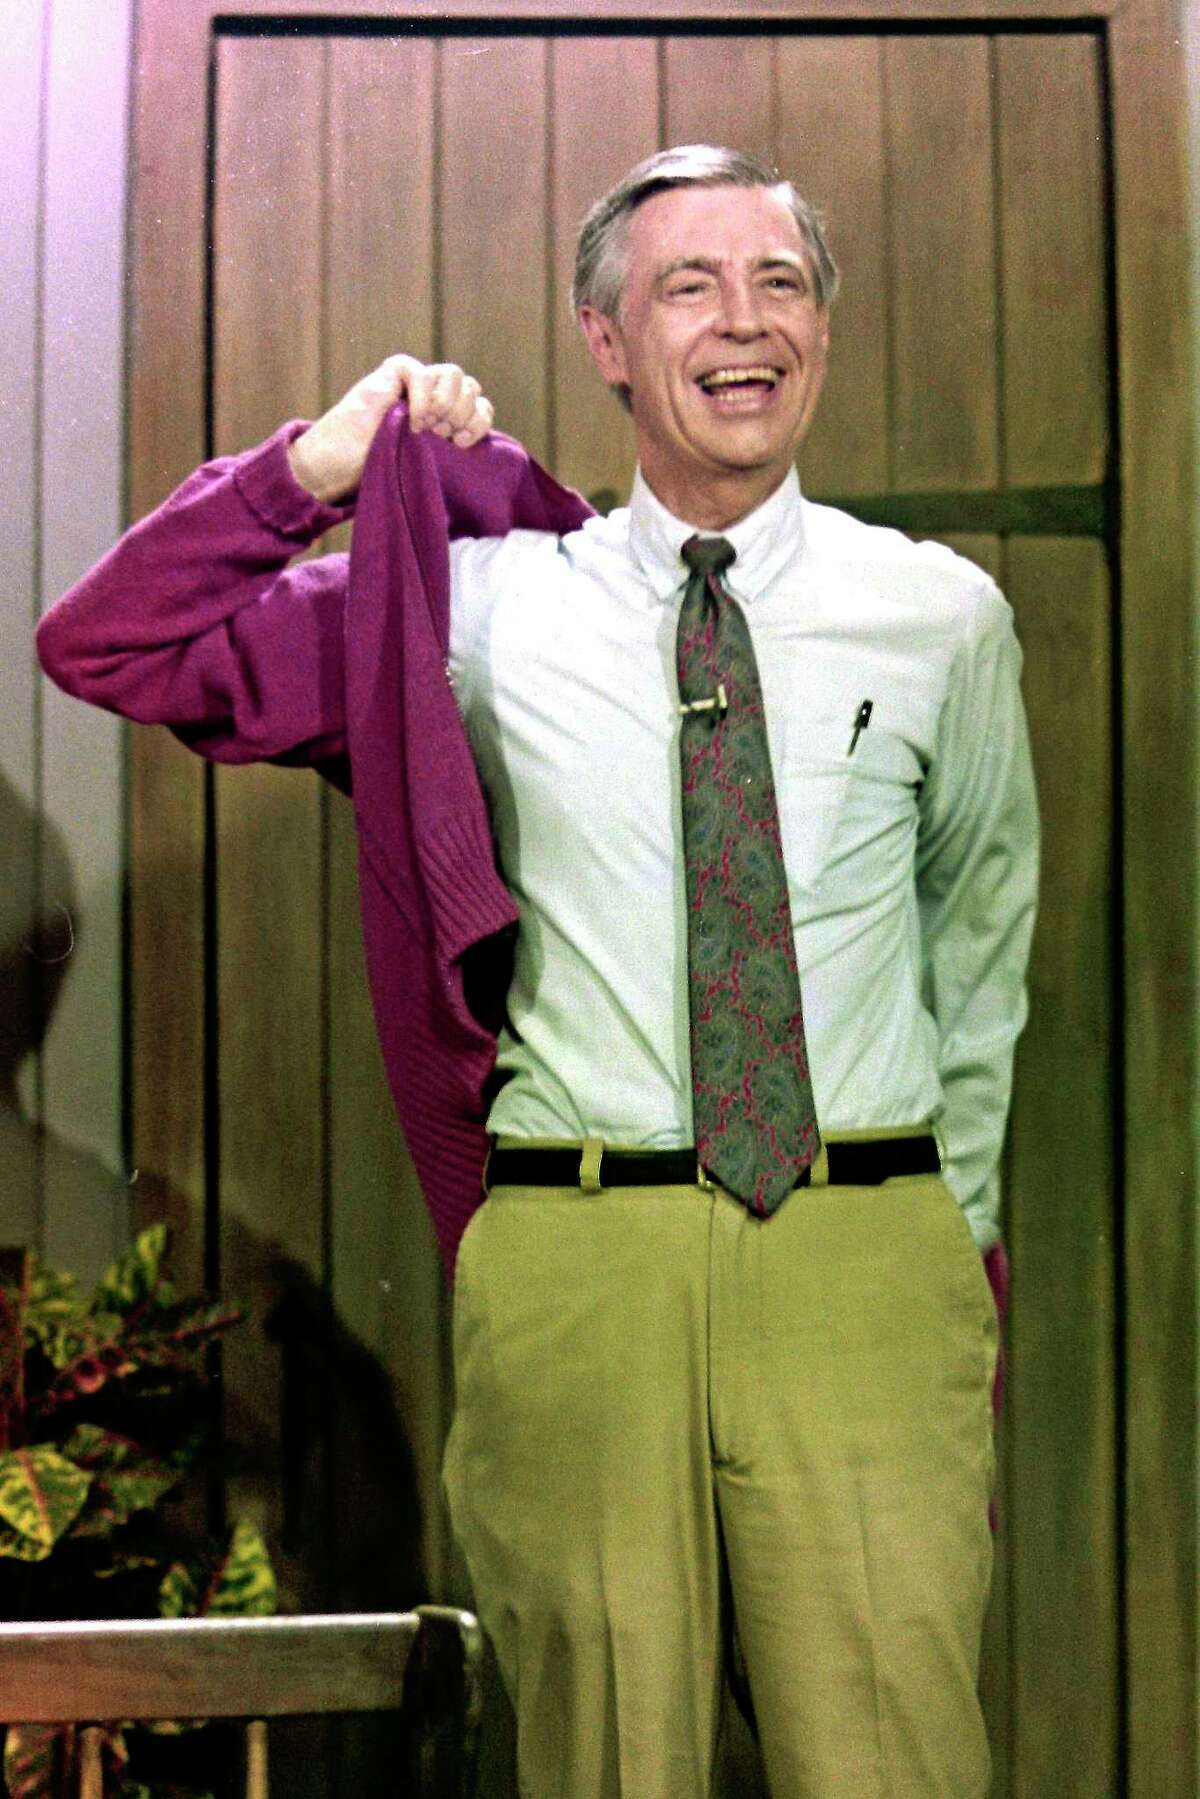 This June 8, 1993, file photo shows Fred Rogers during a rehearsal for a segment of his television program Mr. Rogers' Neighborhood in Pittsburgh.